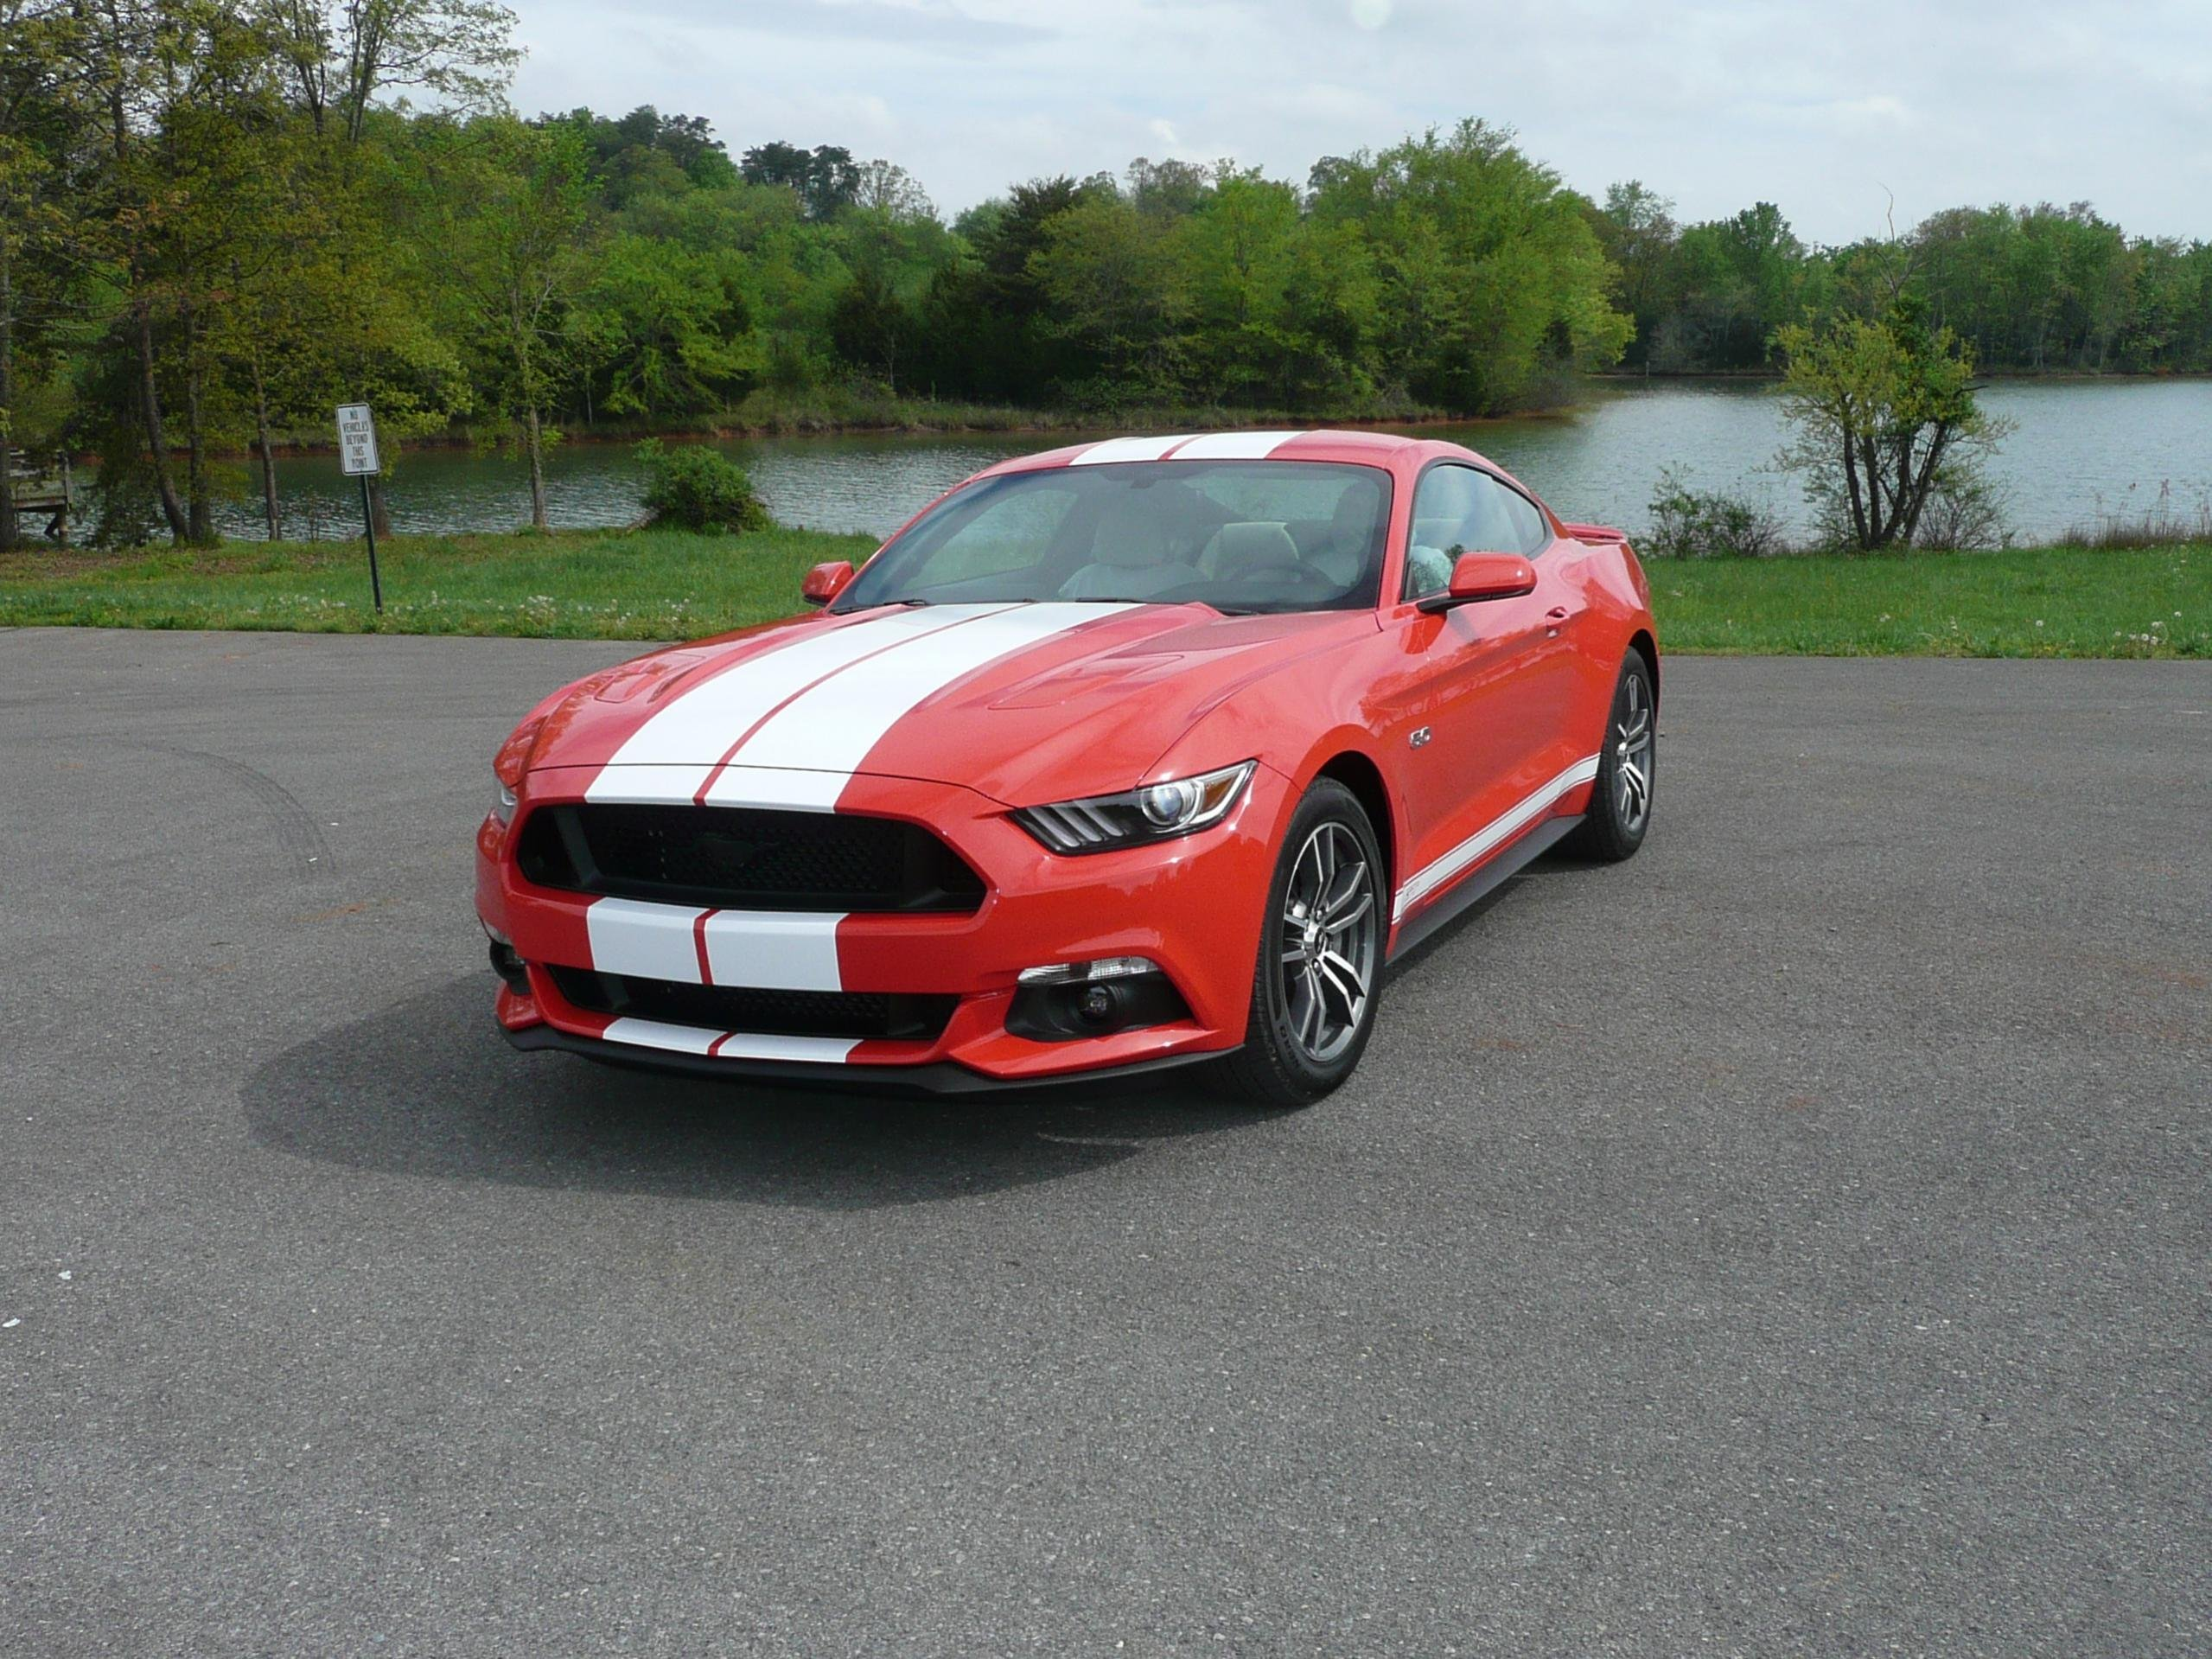 2015 mustang gt auto vs manual ford mustang forum. Black Bedroom Furniture Sets. Home Design Ideas